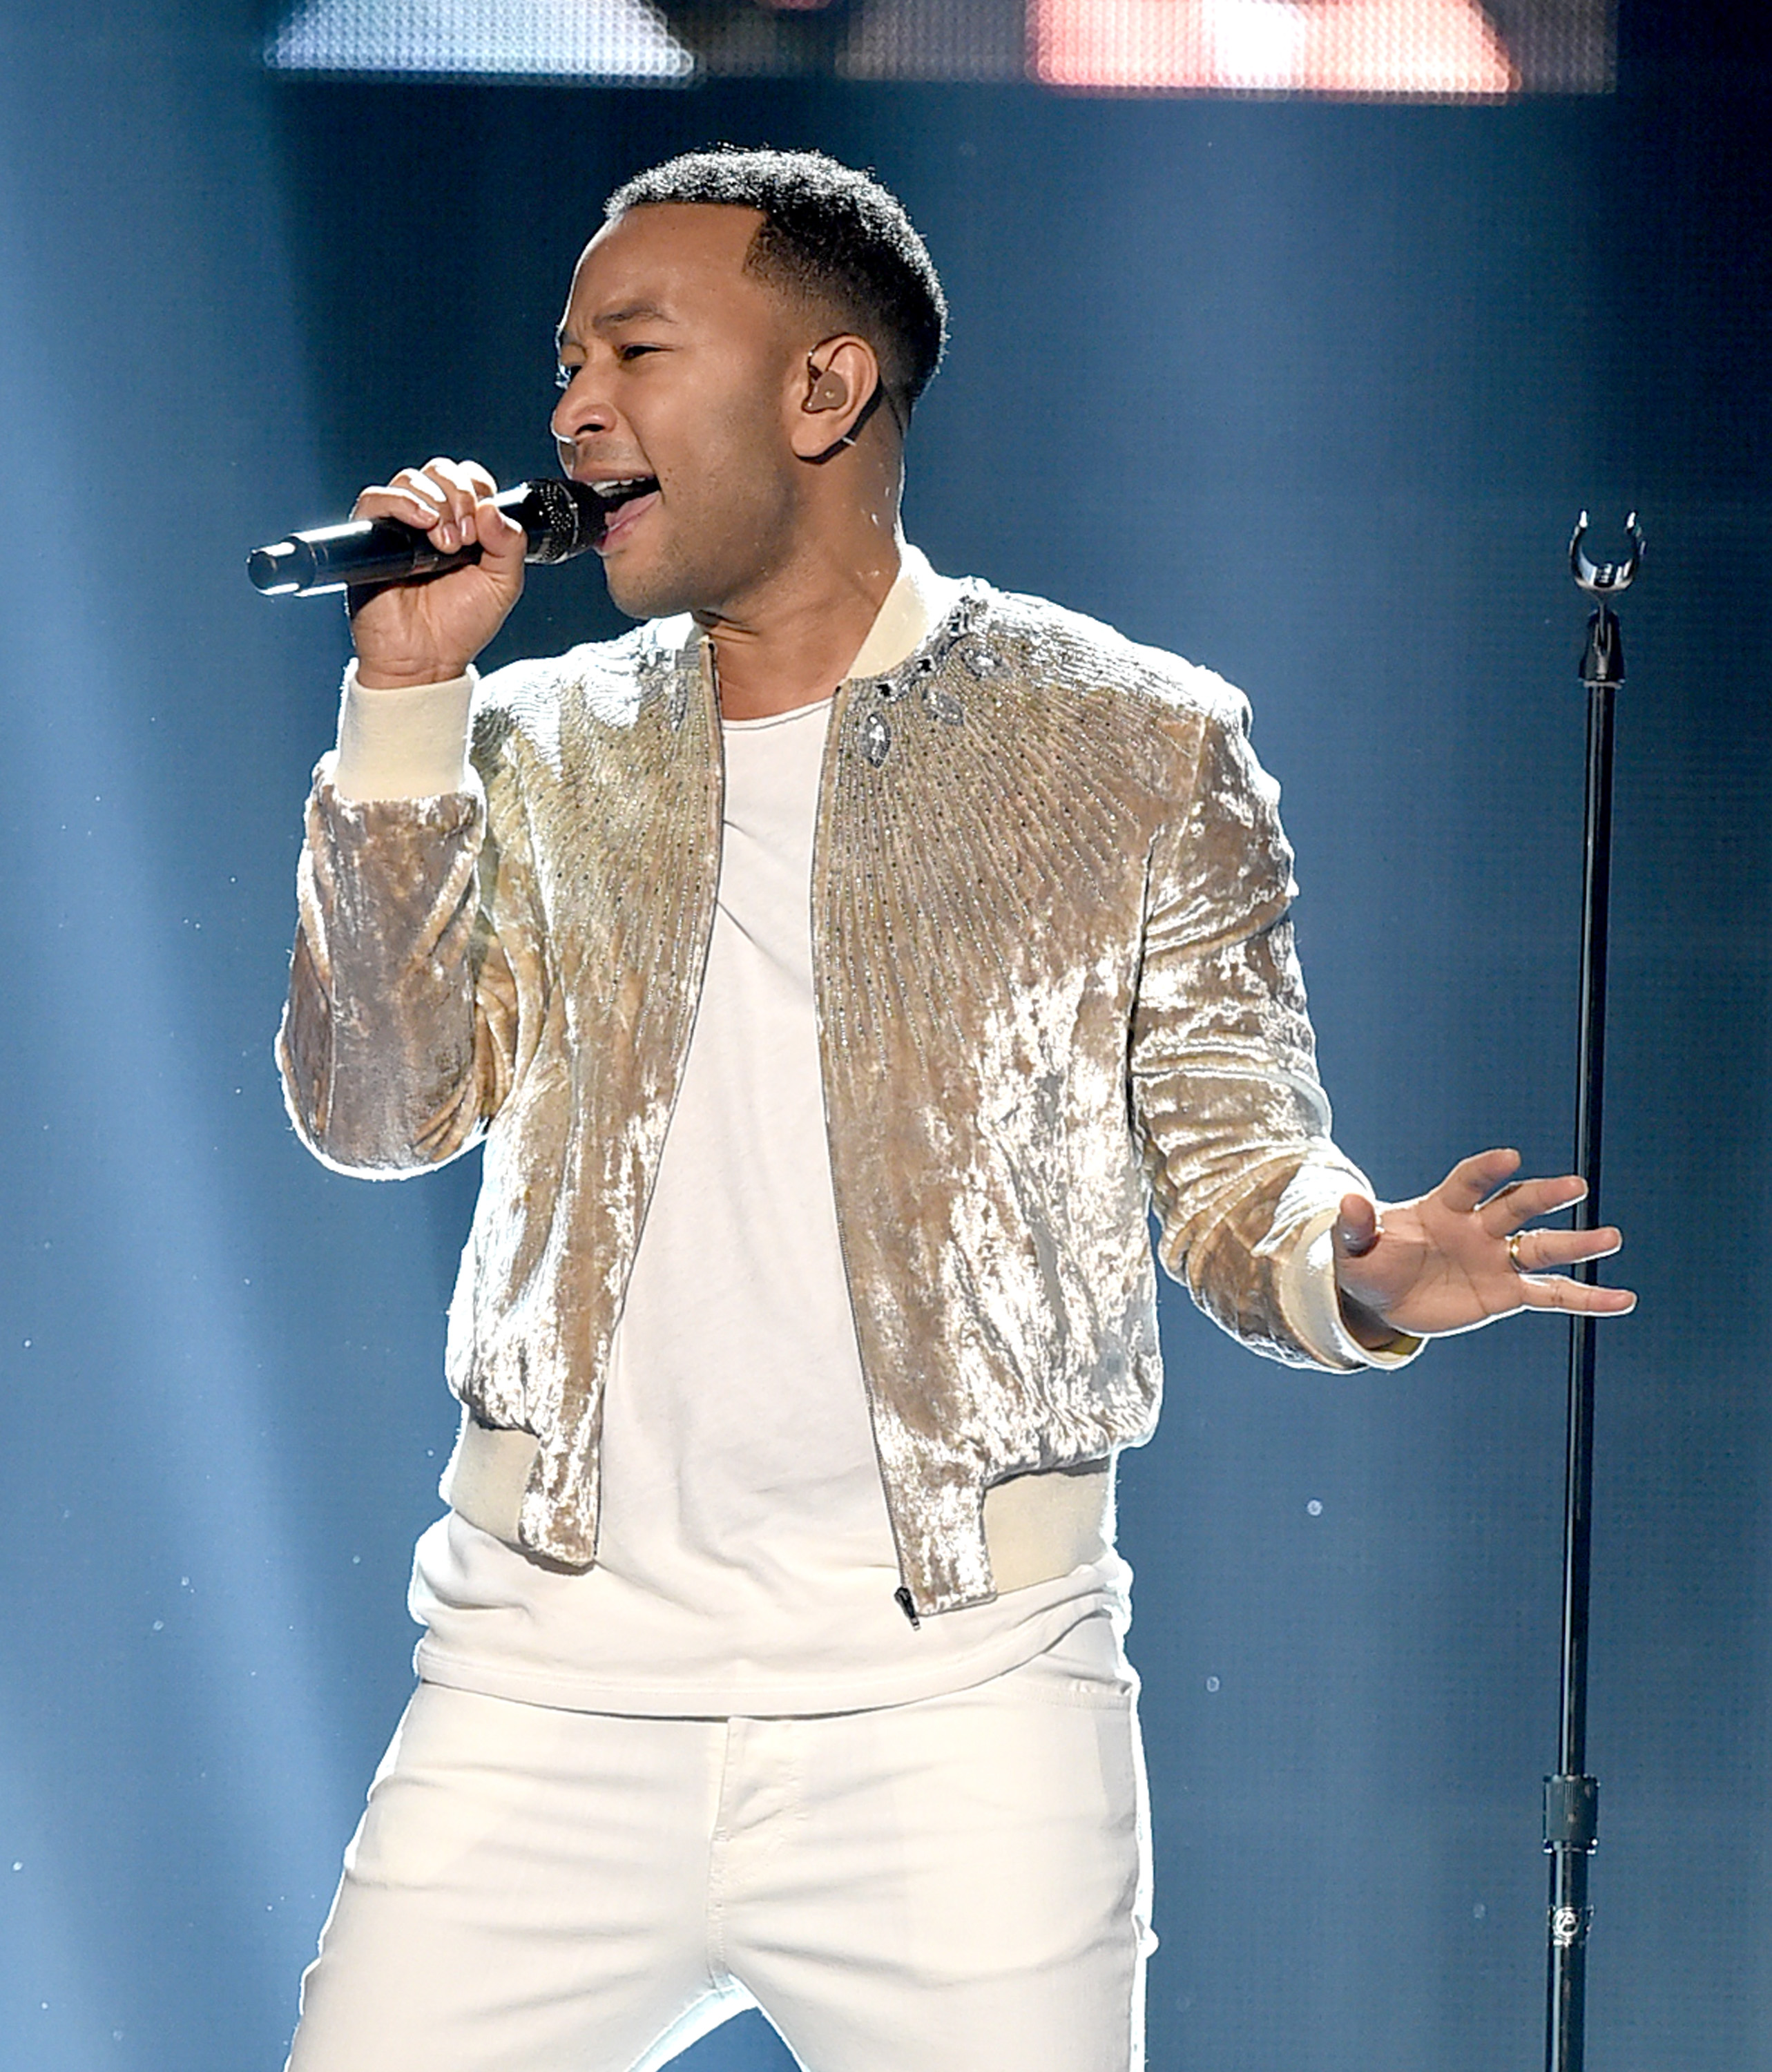 American Music Awards: Chrissy Teigen Flaunts Major Skin with John Legend